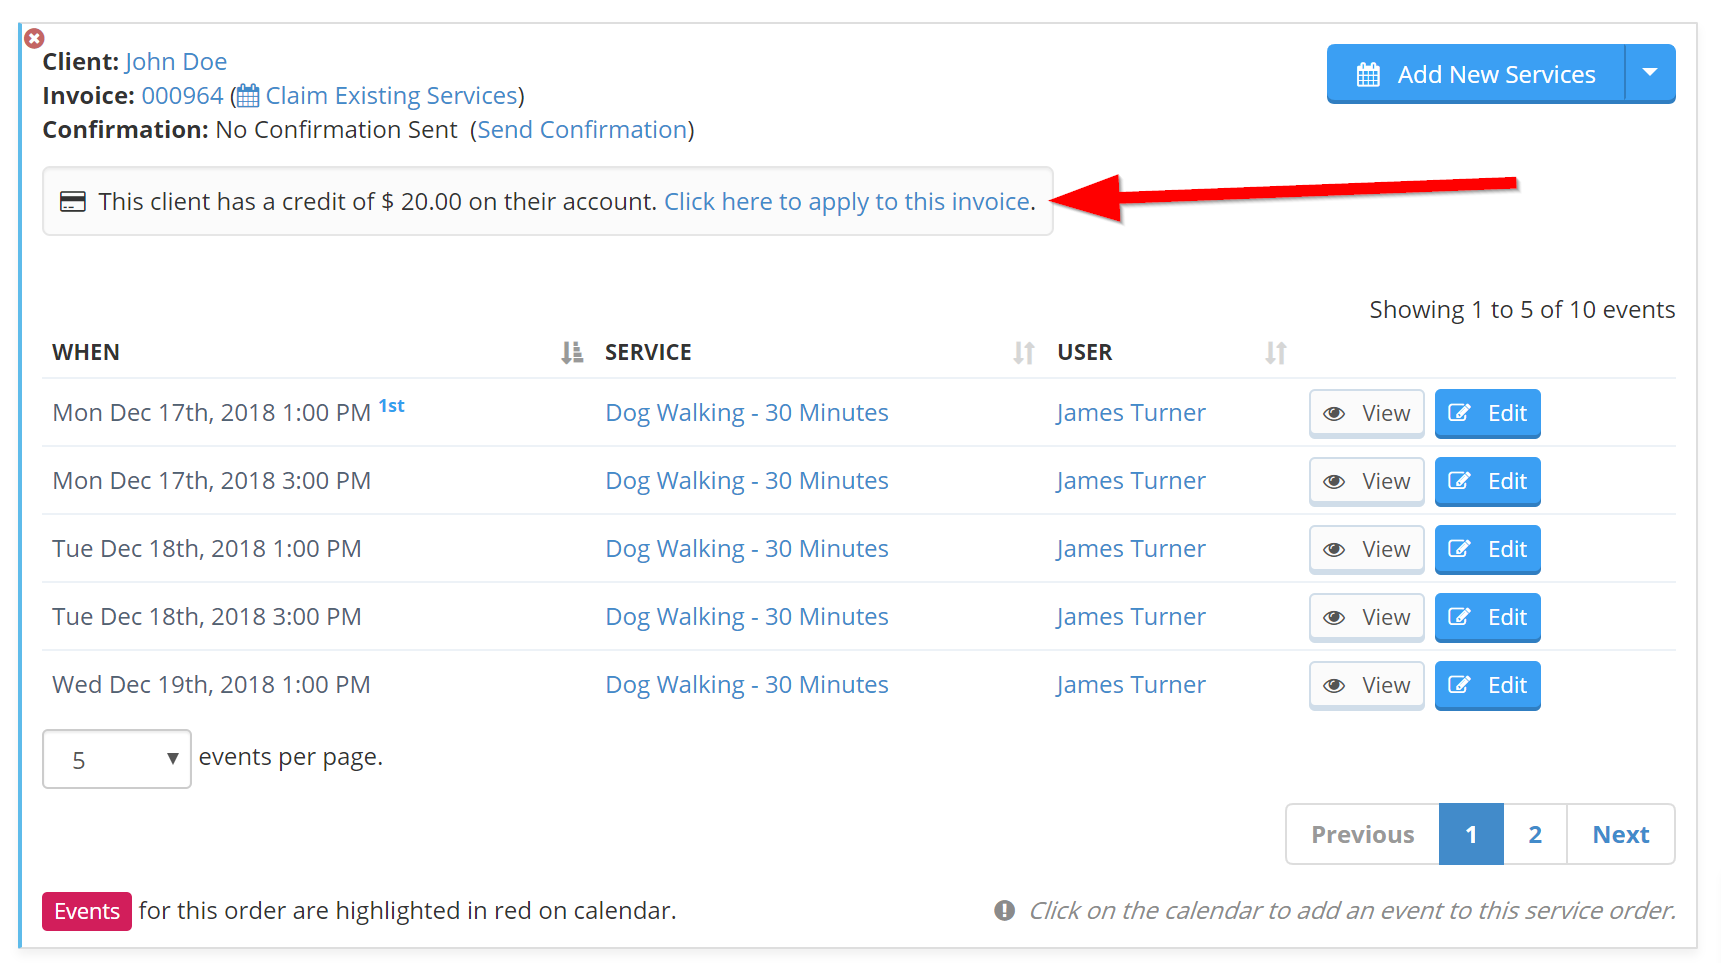 Redeeming Credit From Service Order in Scheduler